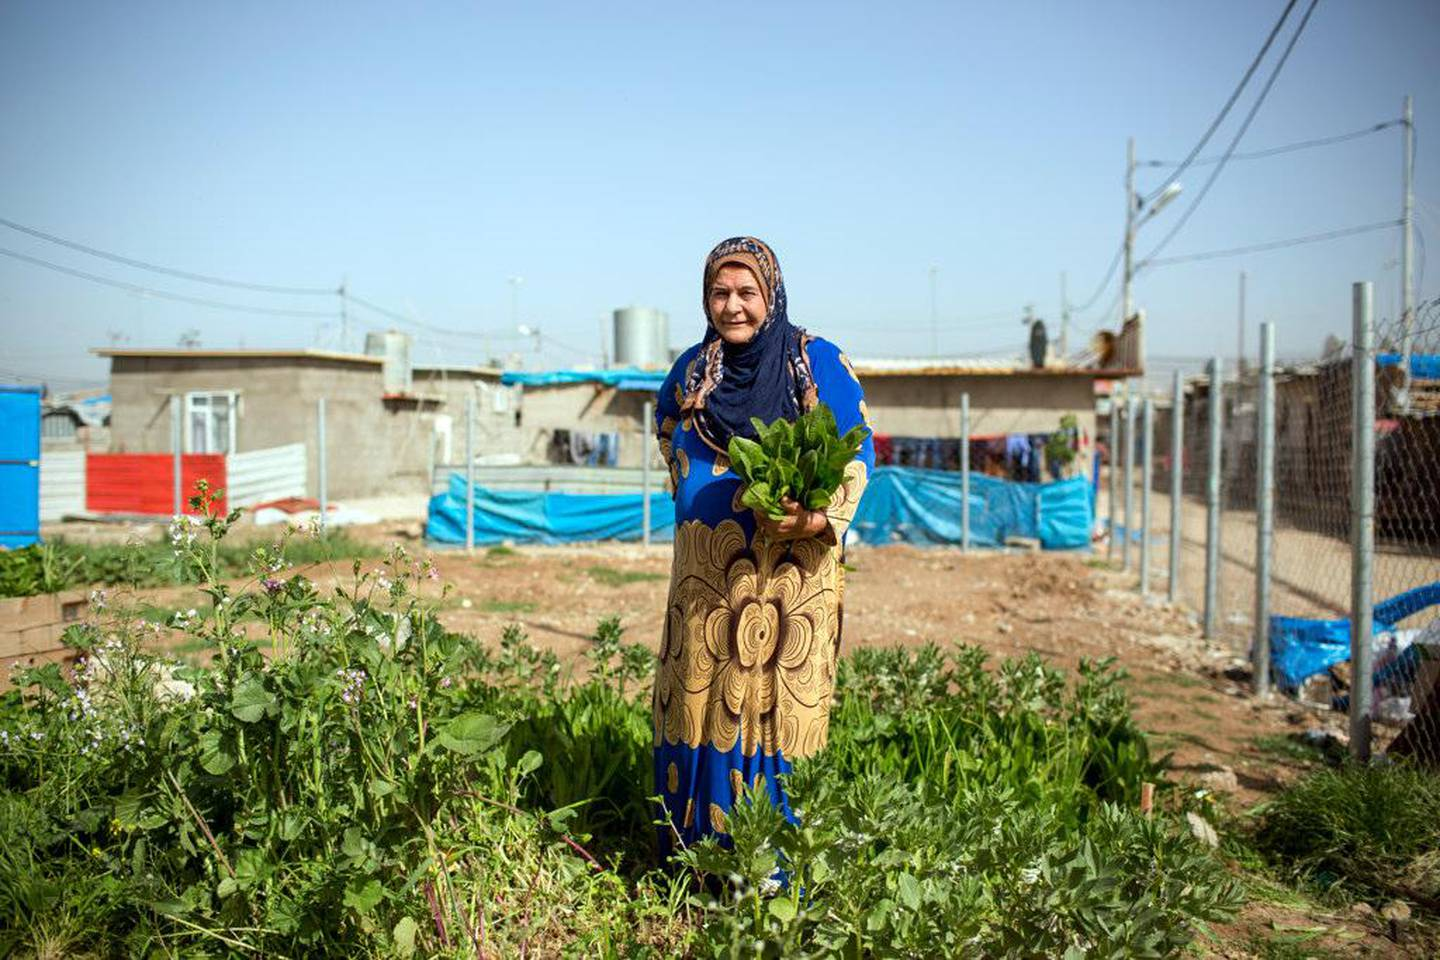 Women are working on their raised-bed gardens, which are part of the Liberation Garden, founded by the Lemon Tree Trust Foundation.Domiz refugee camp in northern Iraq is established in 2012 and provides shelter for primarily Syrian Kurds. Since 2015 the British NGO the Lemon Tree Trust supports the development of urban agriculture and greening innovation for refugees and displaced people and promoting food production well-being and community. With the refugee community in camp Domiz The Lemon Tree Trust organises a community garden and supports gardening around the shelters.  ©2018 Photo by Dirk-Jan Visser